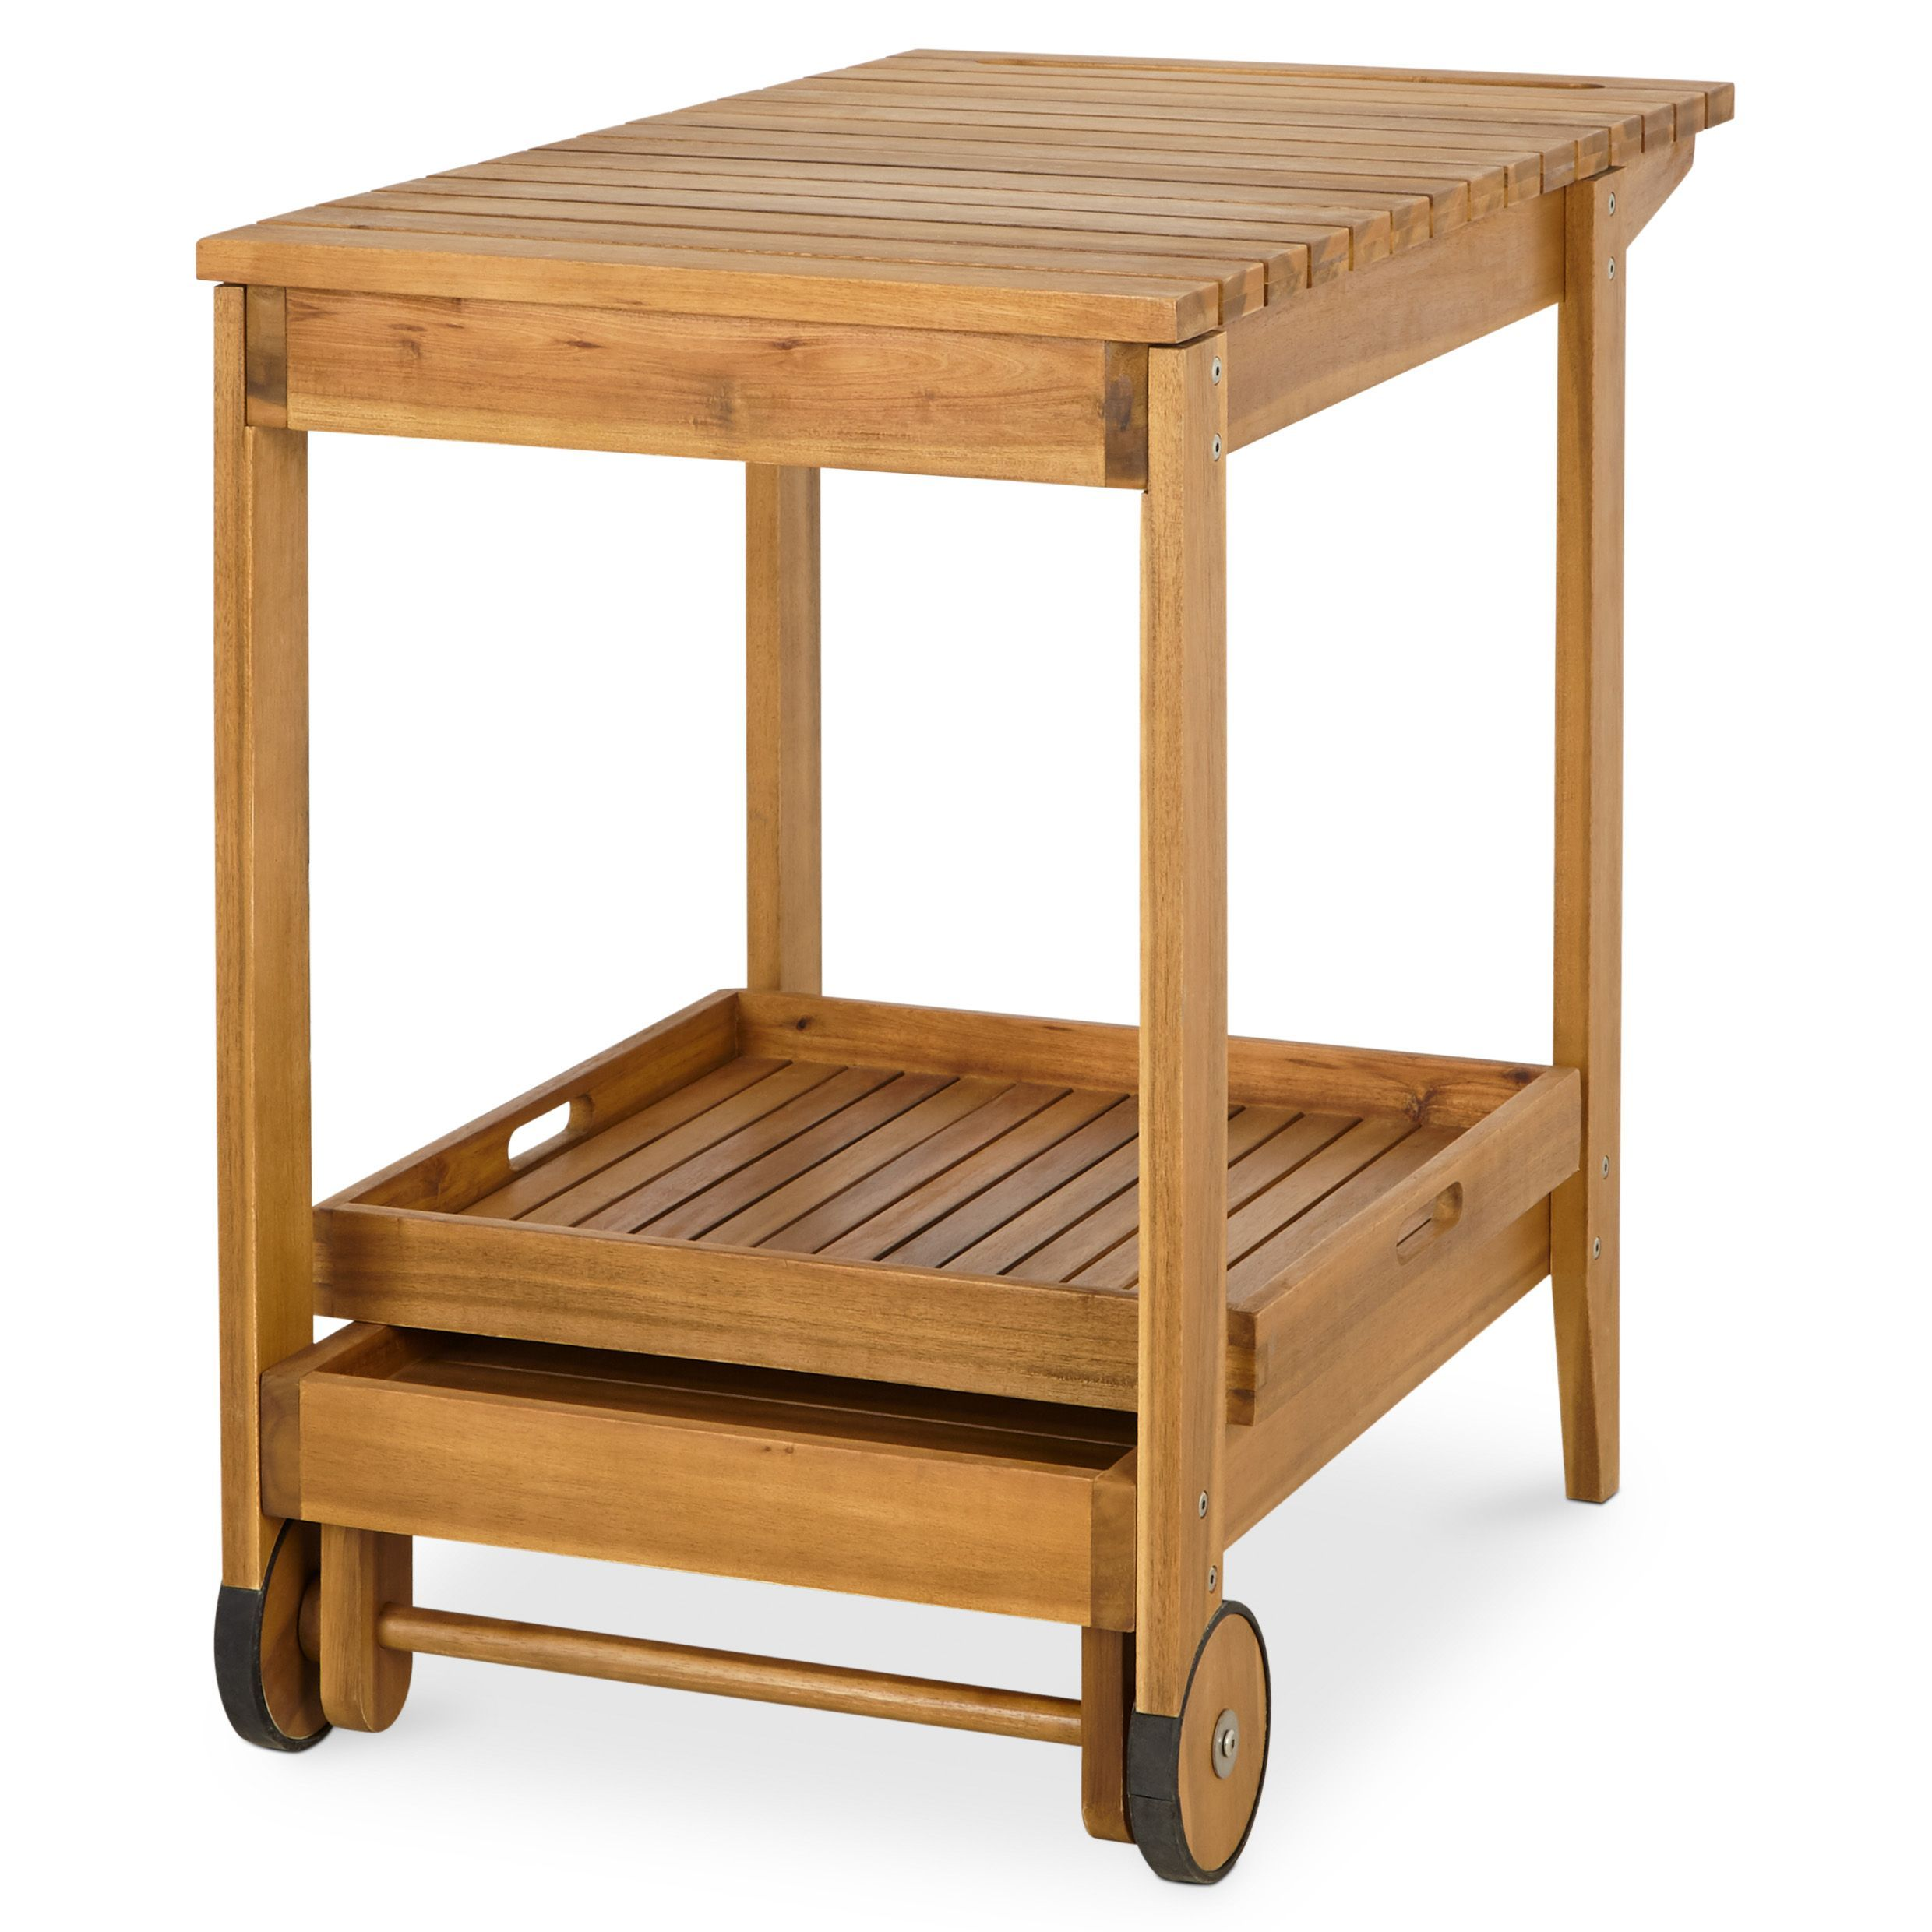 Denia Wooden Garden Trolley B&Q for all your home and